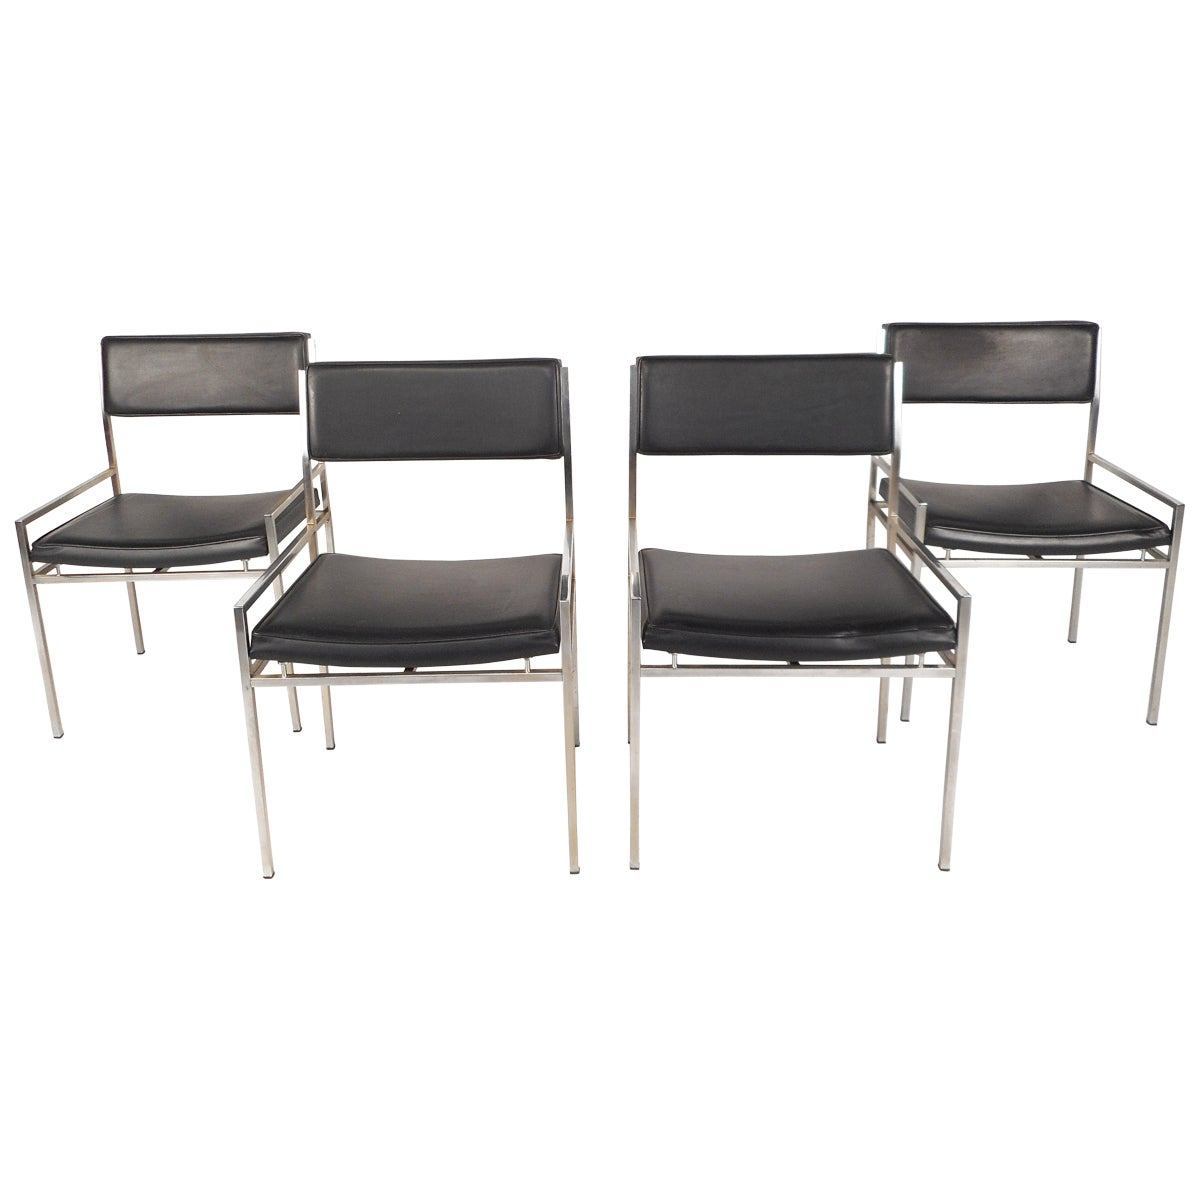 Set of Mid-Century Modern Chrome and Vinyl Dining Chairs